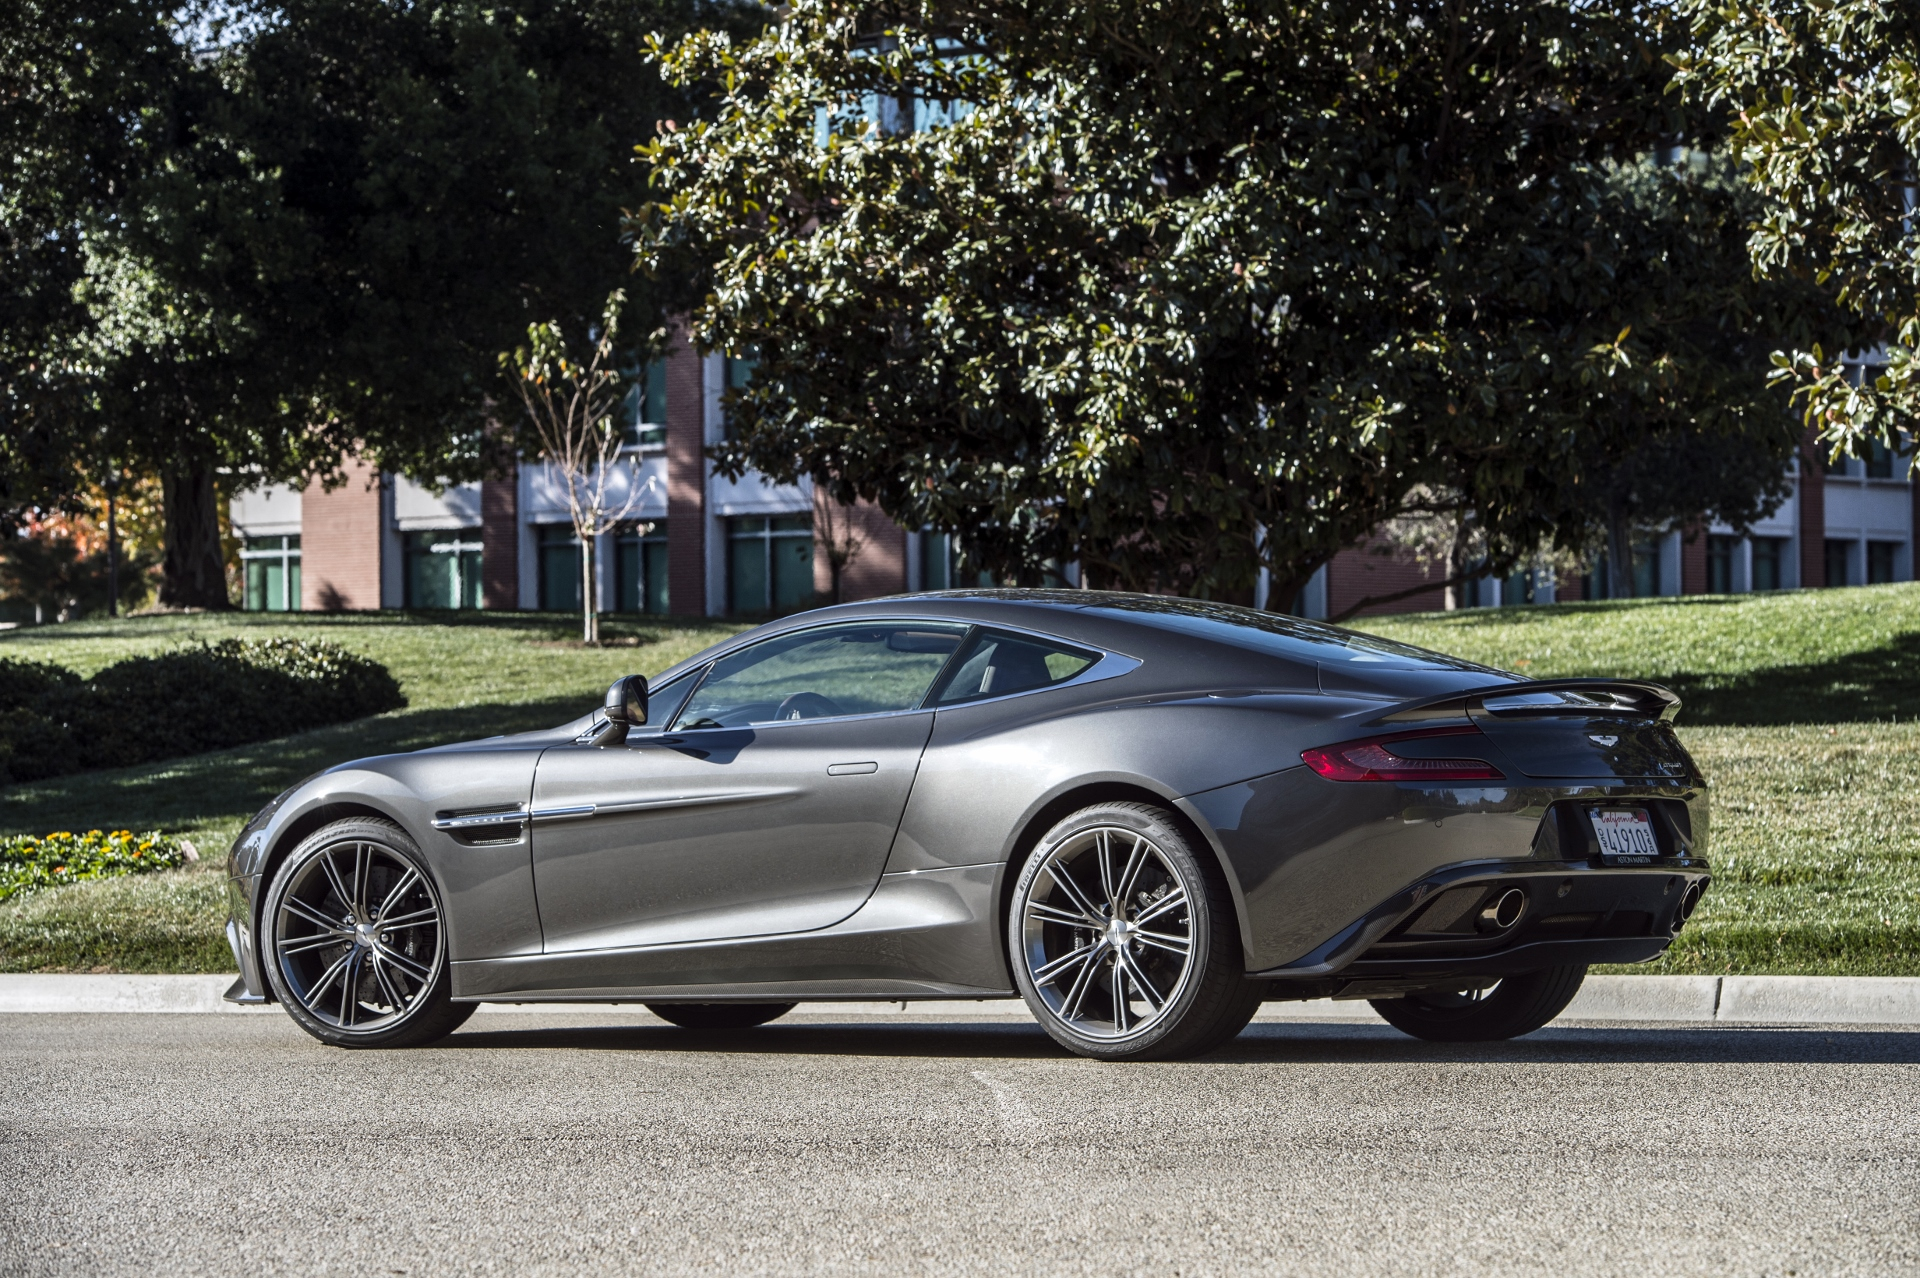 Aston Martin Db9 Vanquish Aston Martin To Replace Vantage And Vanquish By 2018 Report